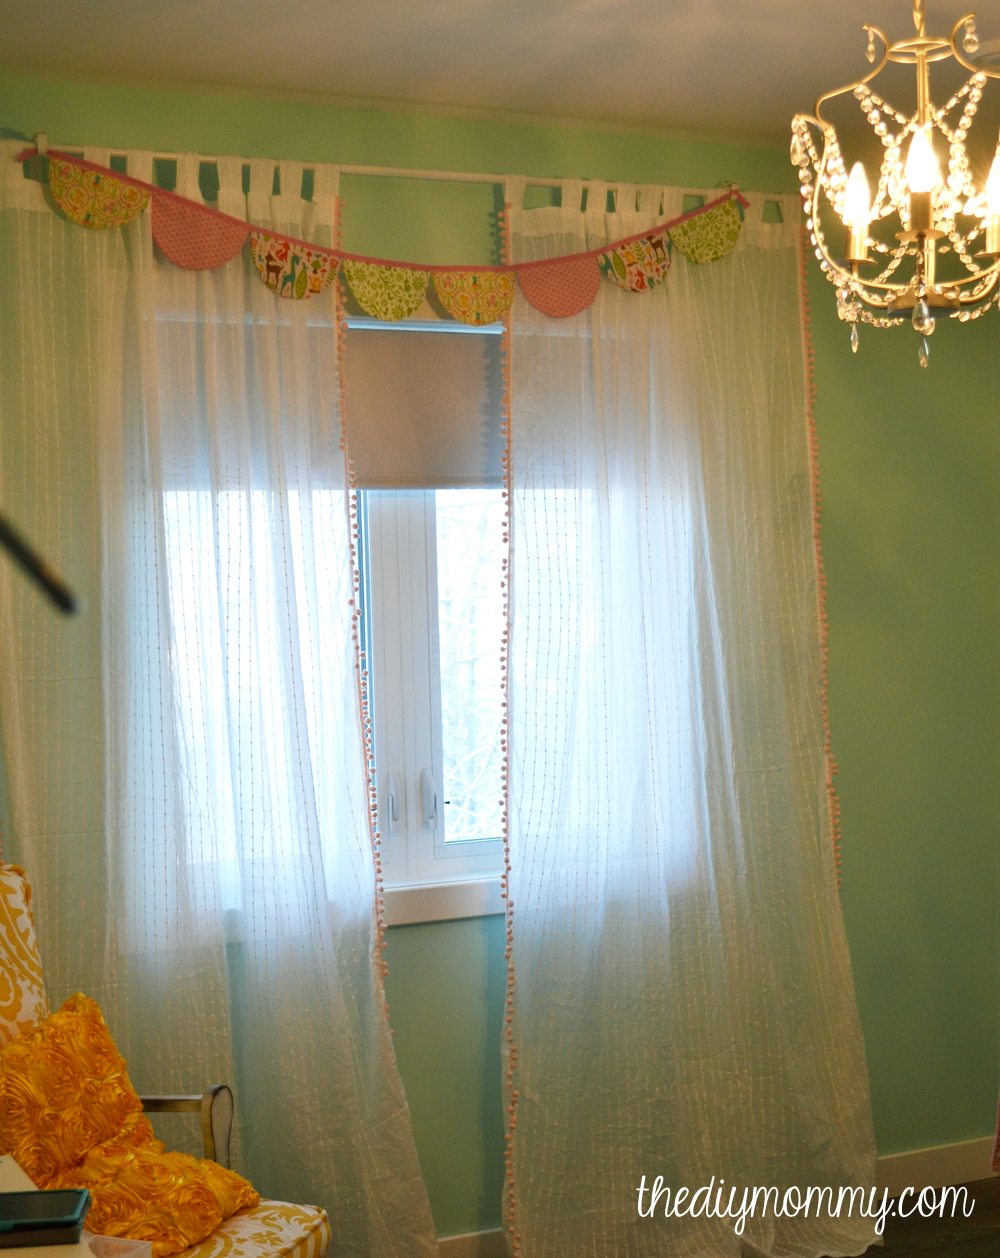 Make boutique nursery drapes with pre made curtains and